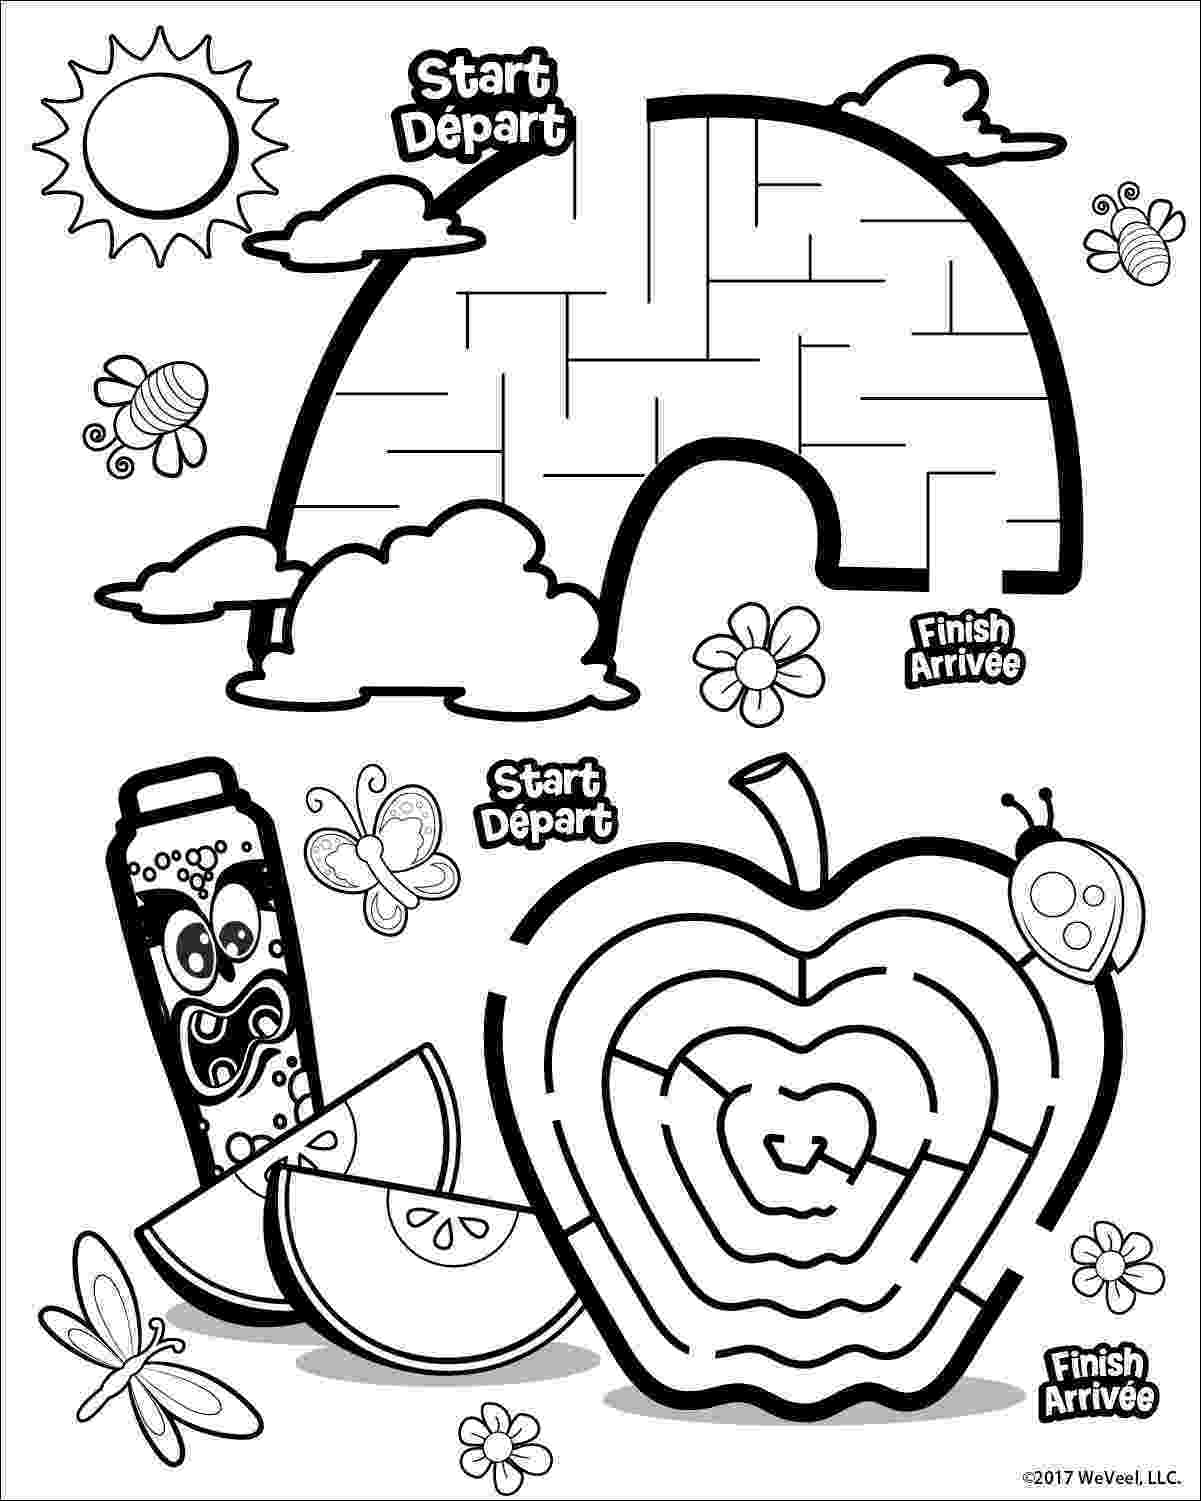 monster high coloring book games coloring pages monster high coloring pages free and printable book monster coloring high games